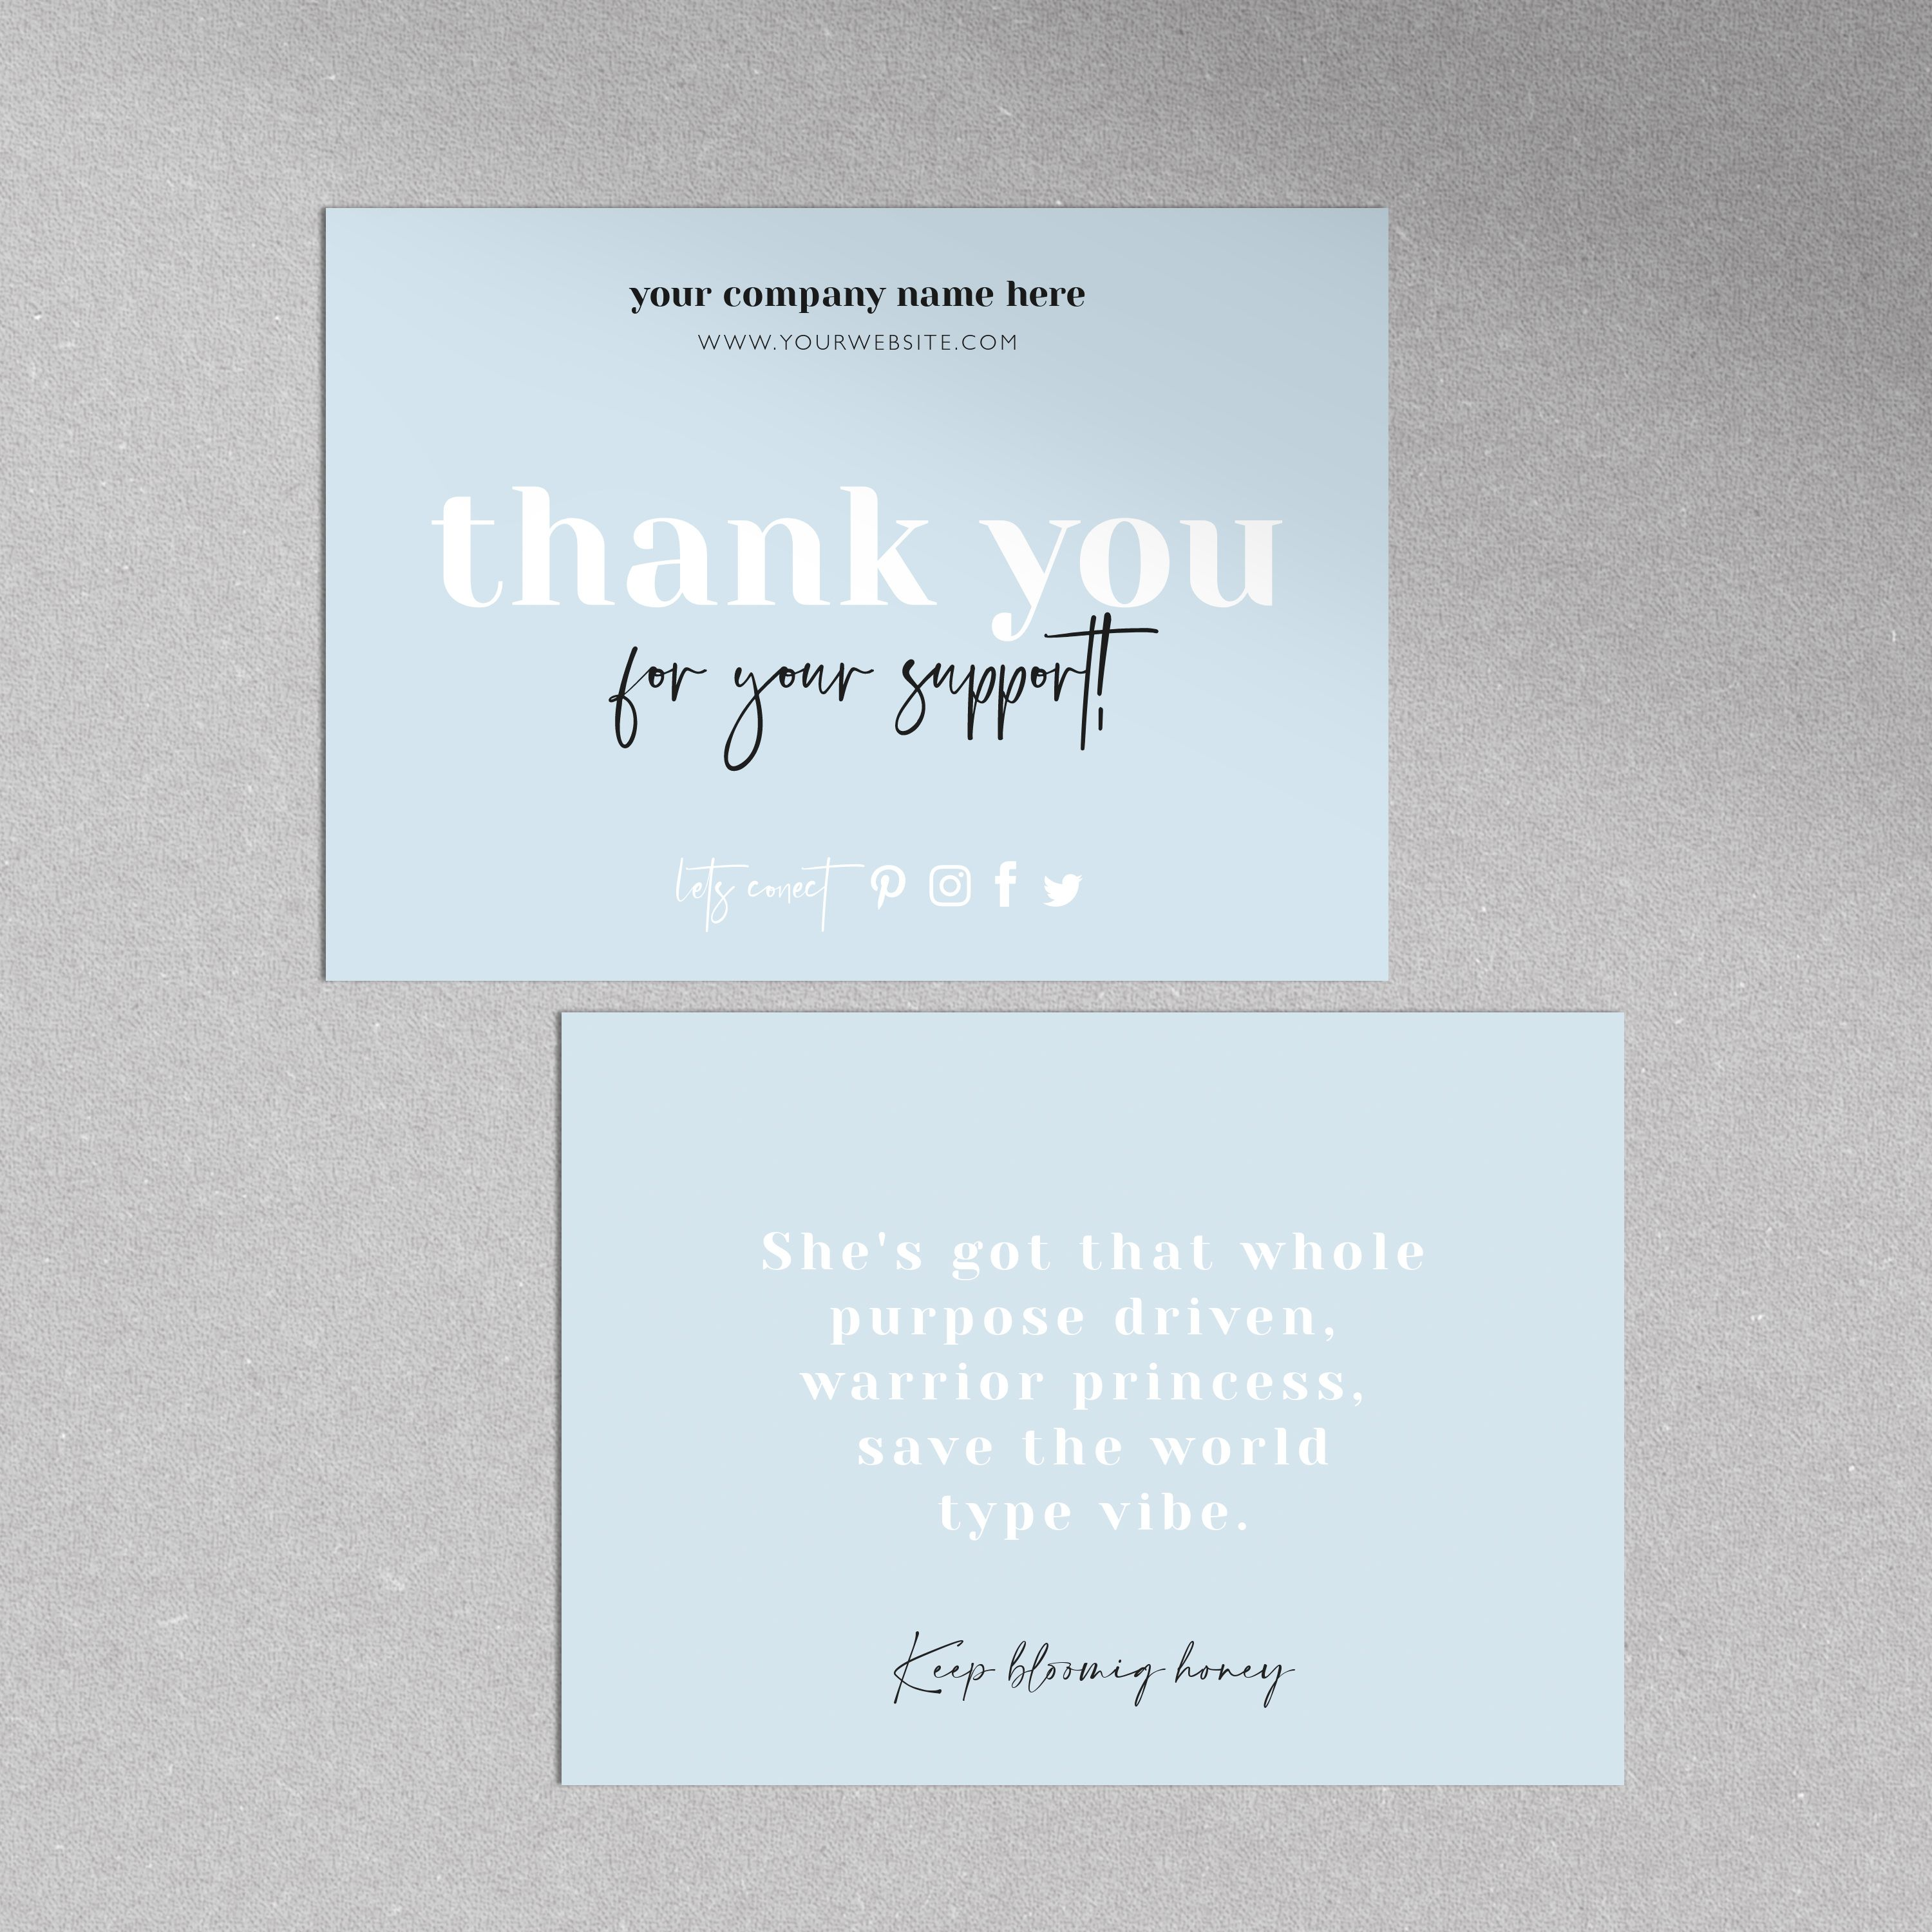 Small Business Thank You For Your Order Card Minimalistic Thank You Package Insert Thank You For Your Support Business Stationery In 2021 Business Cards Minimal Business Thank You Cards Business Thank You